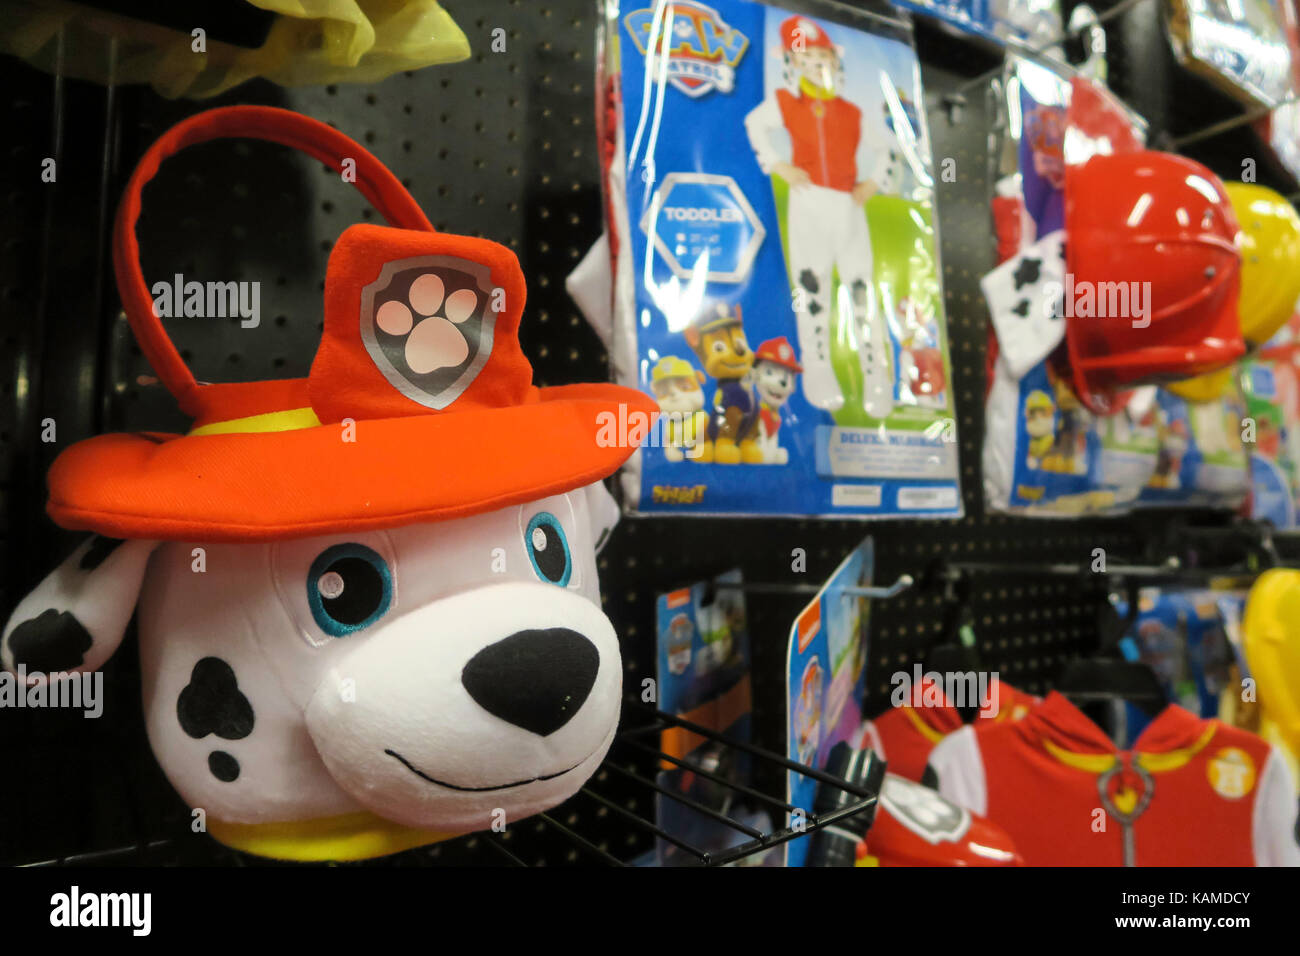 halloween costume store display stock photos & halloween costume